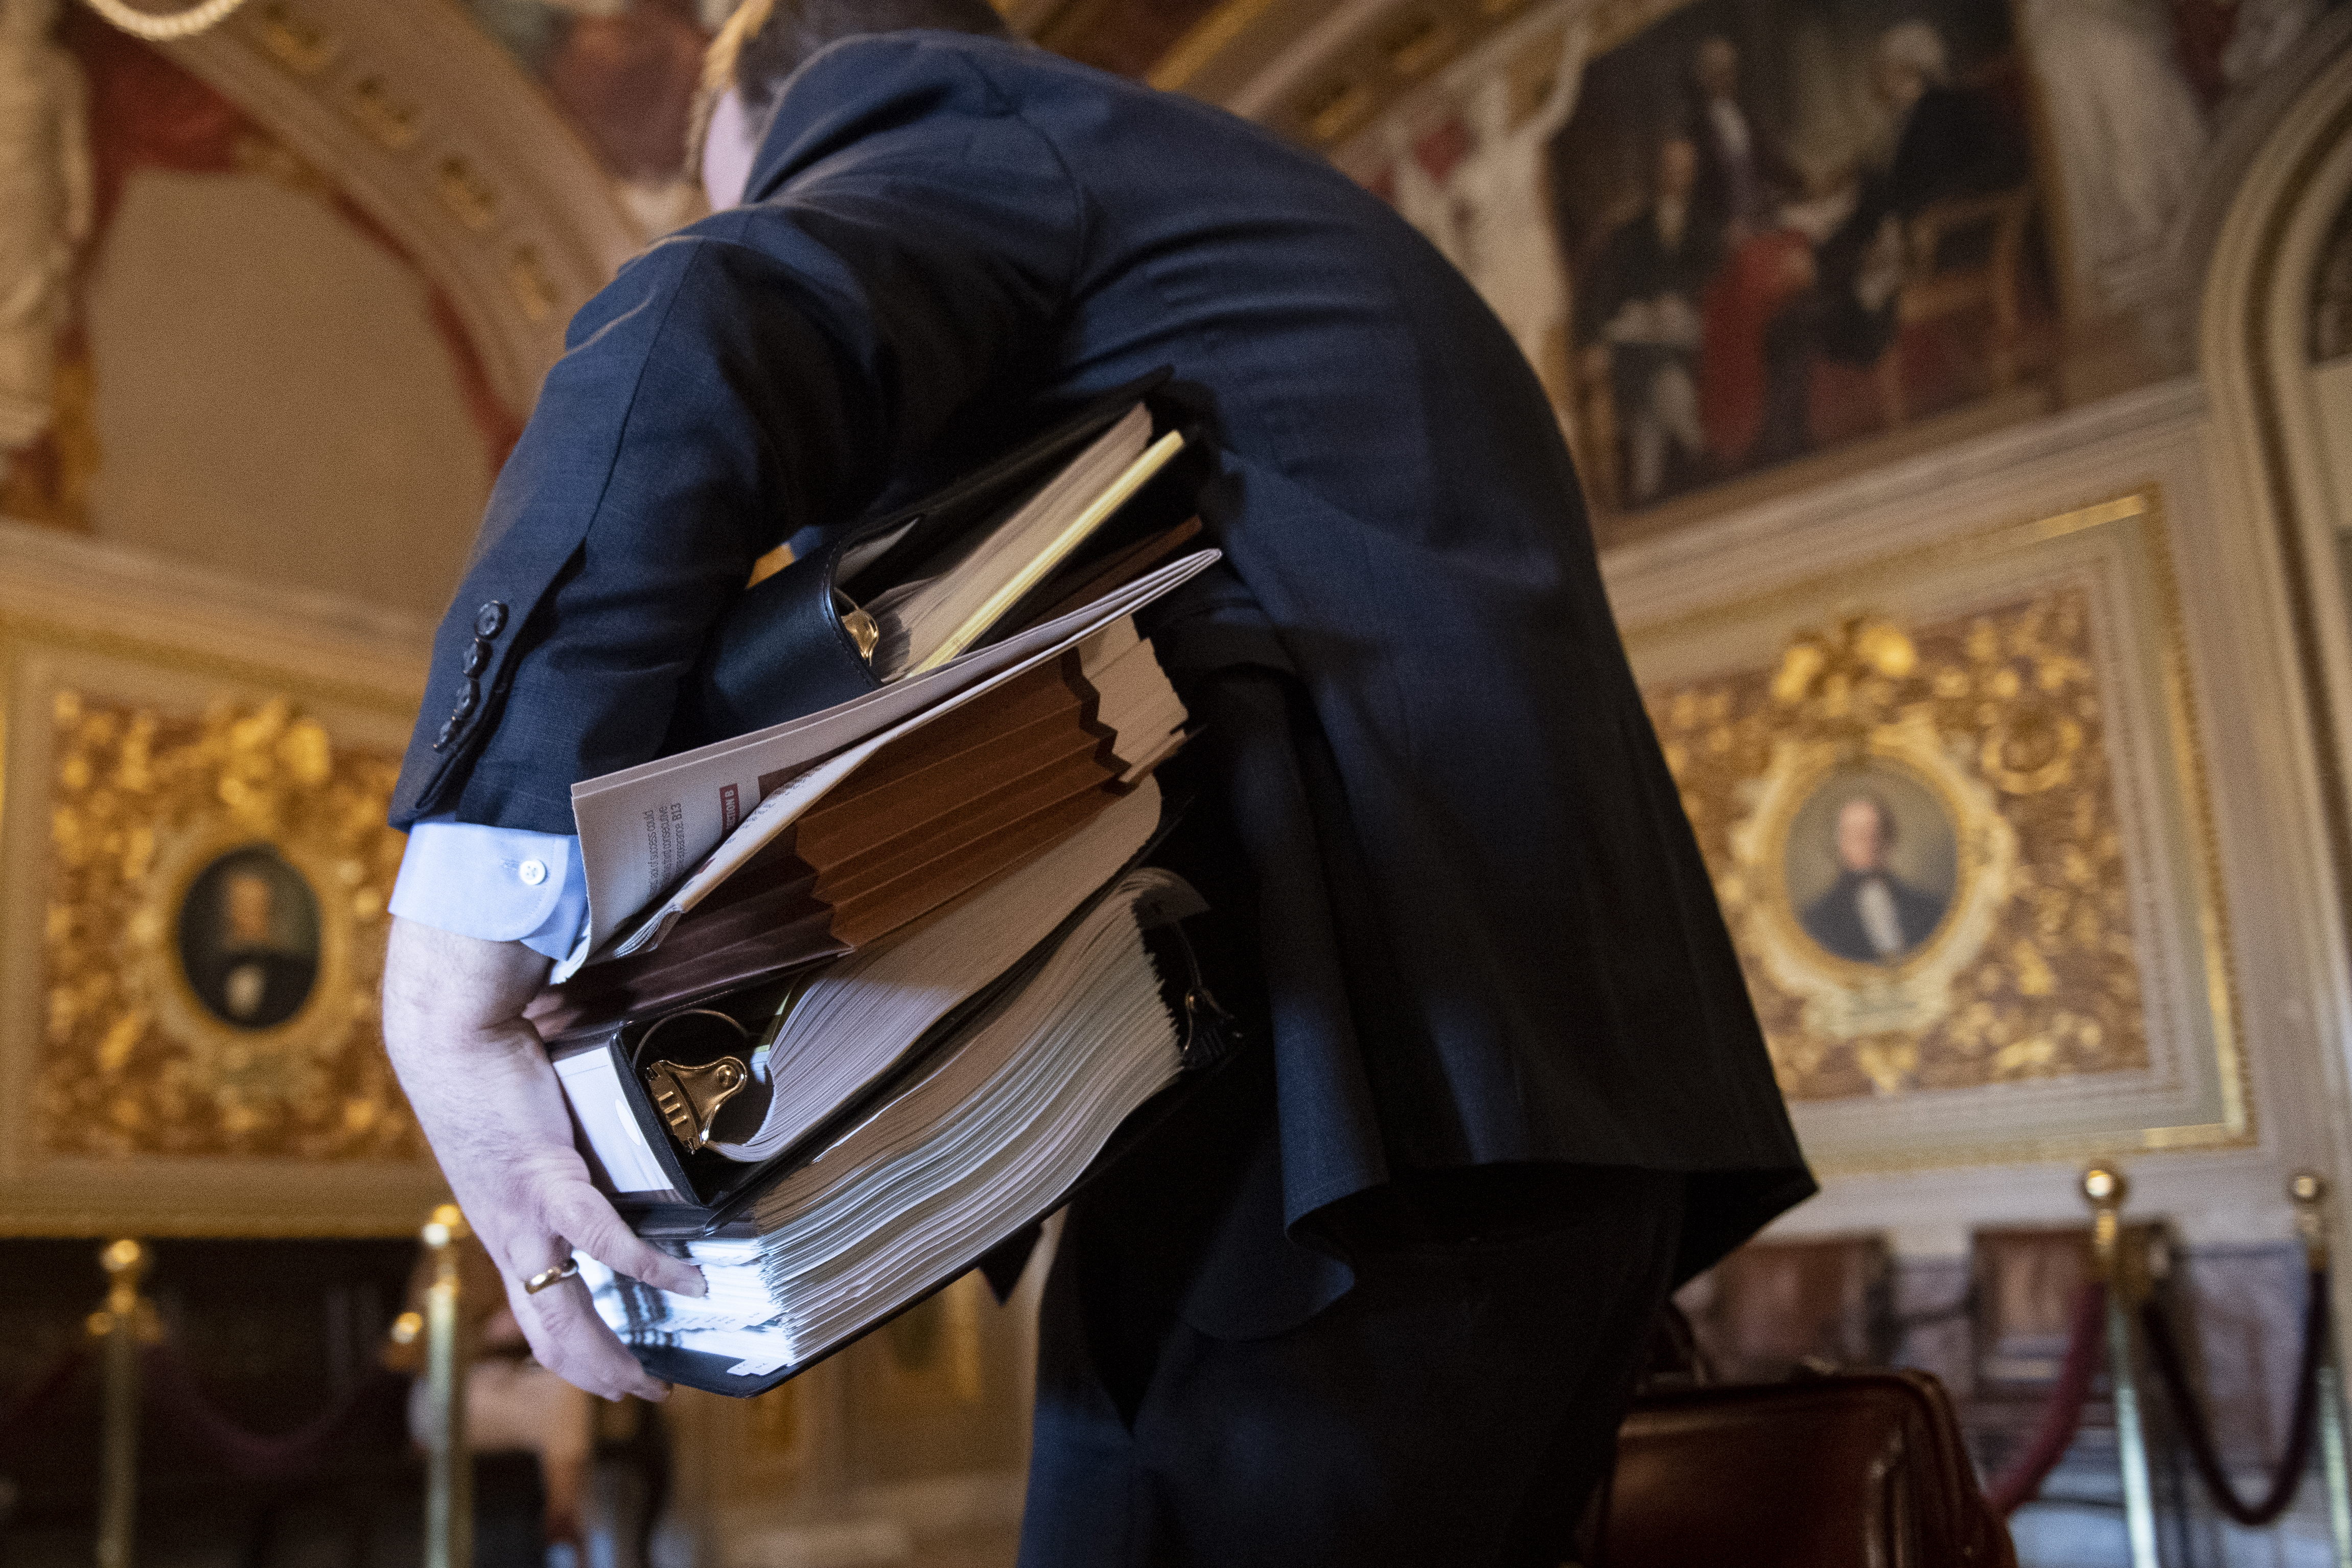 UNITED STATES - JANUARY 30: A staffer carries multiple binders as he walks through the Senate Reception Room before the continuation of the impeachment trial of President Donald Trump on Thursday, Jan. 30, 2020. (Photo by Caroline Brehman/CQ Roll Call)